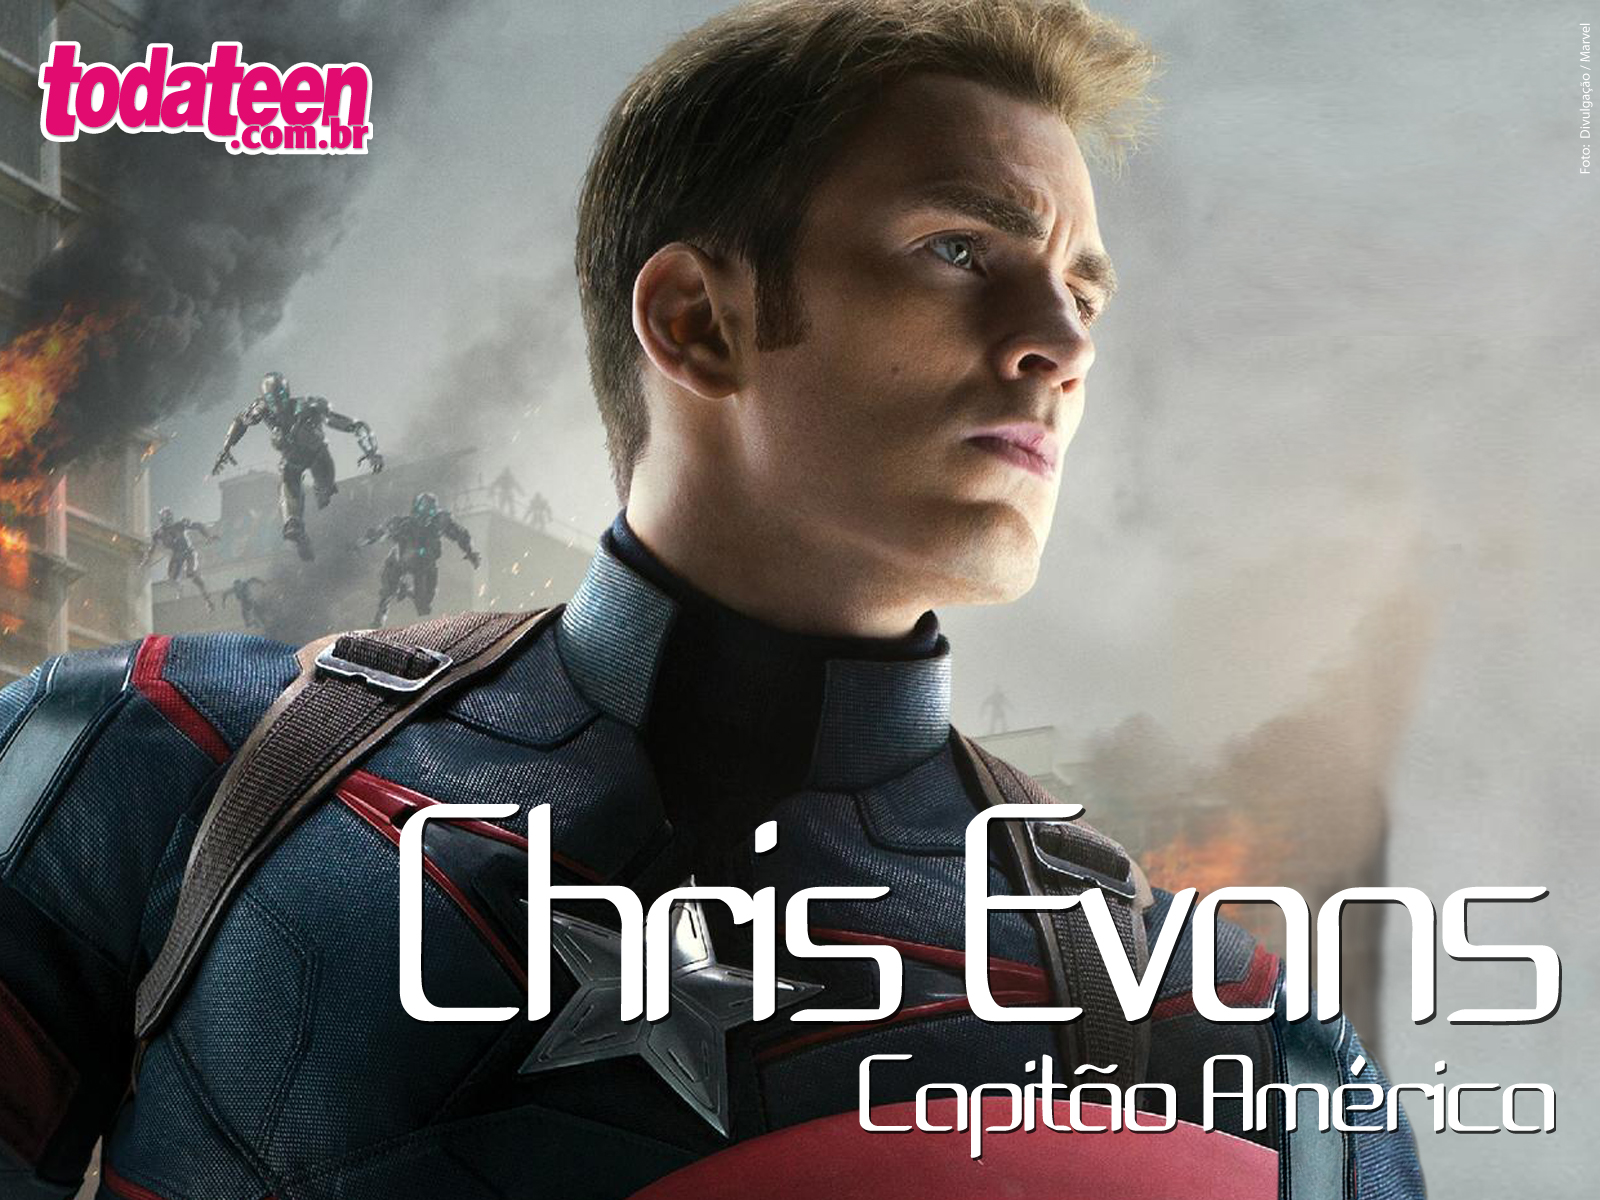 Chris Evans Wallpaper (Fullscreen)